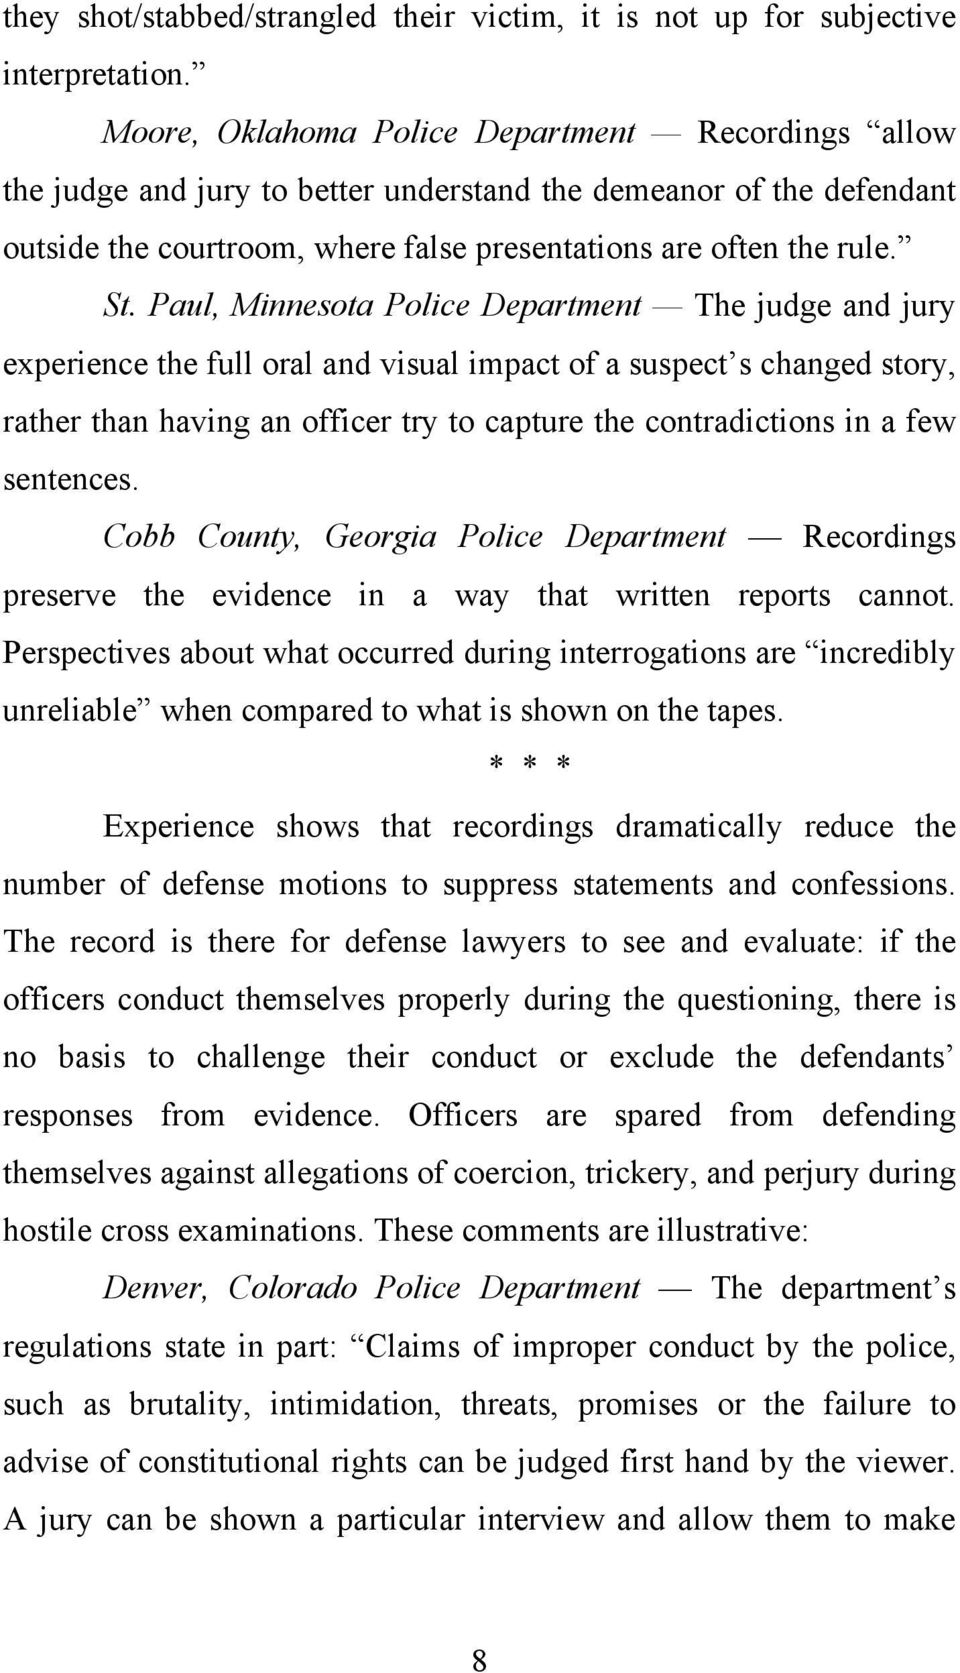 Paul, Minnesota Police Department The judge and jury eperience the full oral and visual impact of a suspect s changed story, rather than having an officer try to capture the contradictions in a few